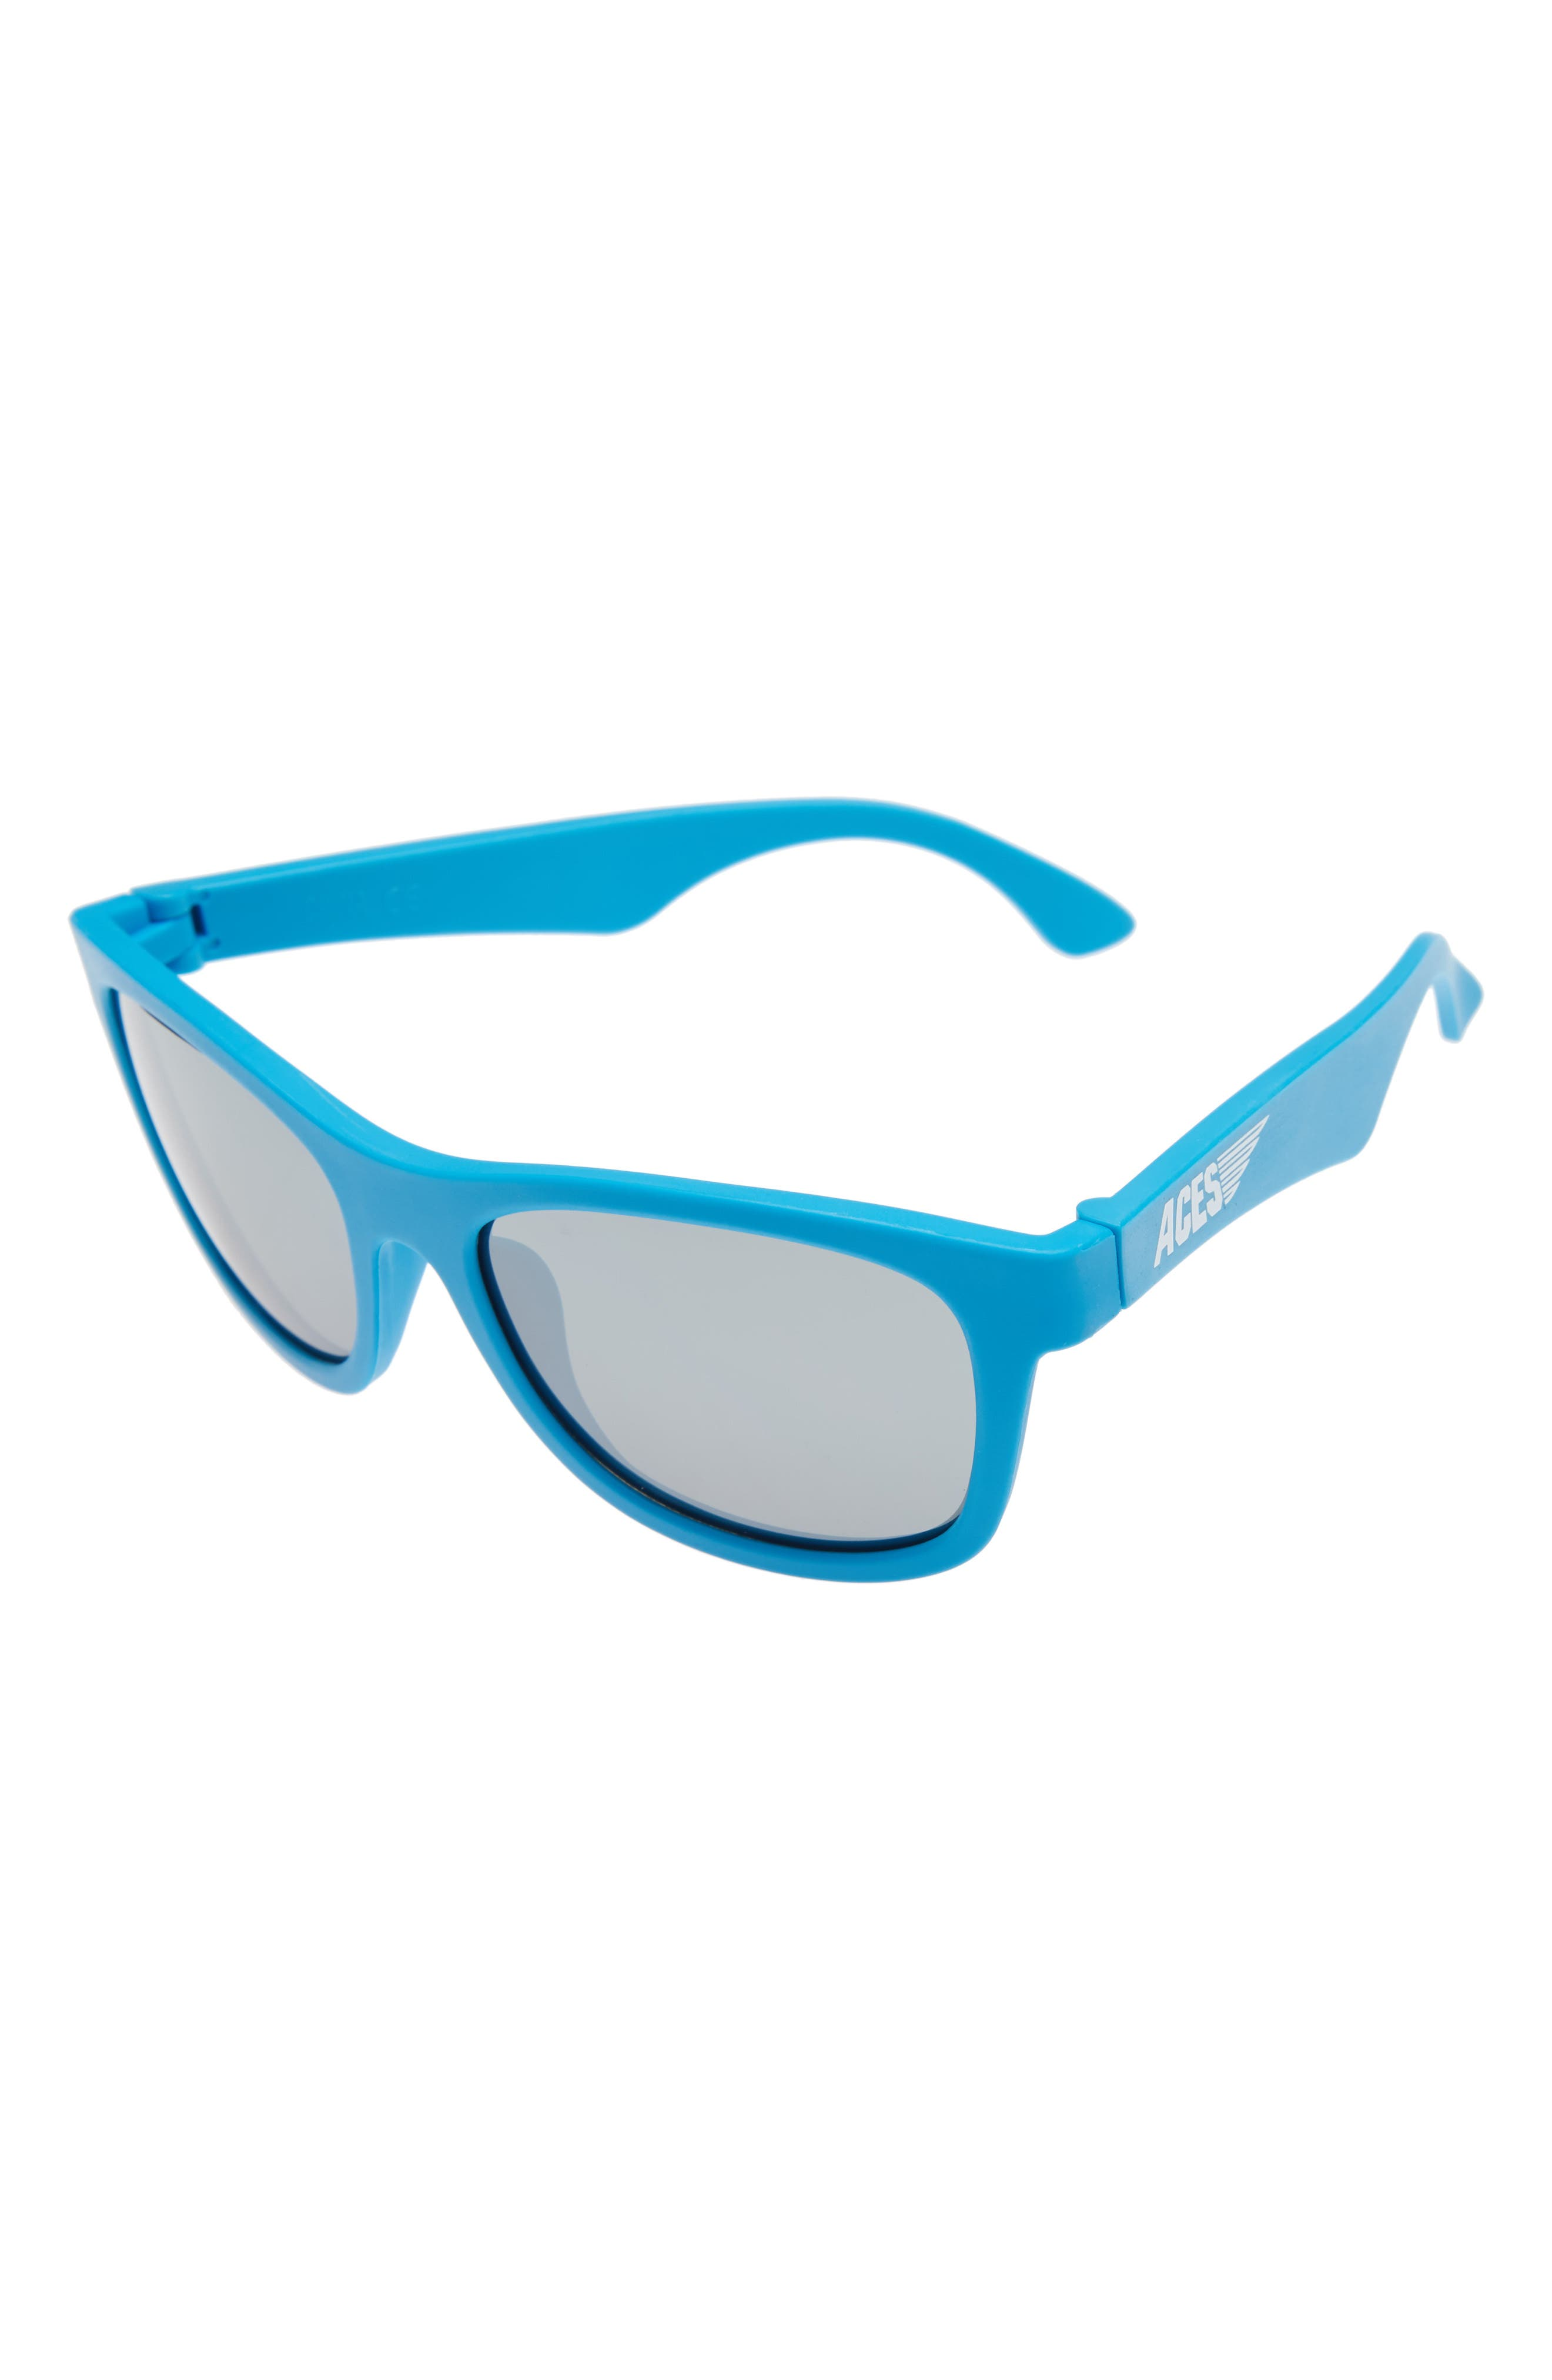 Alternate Image 1 Selected - Babiators Aces Navigator Sunglasses (Big Kid)